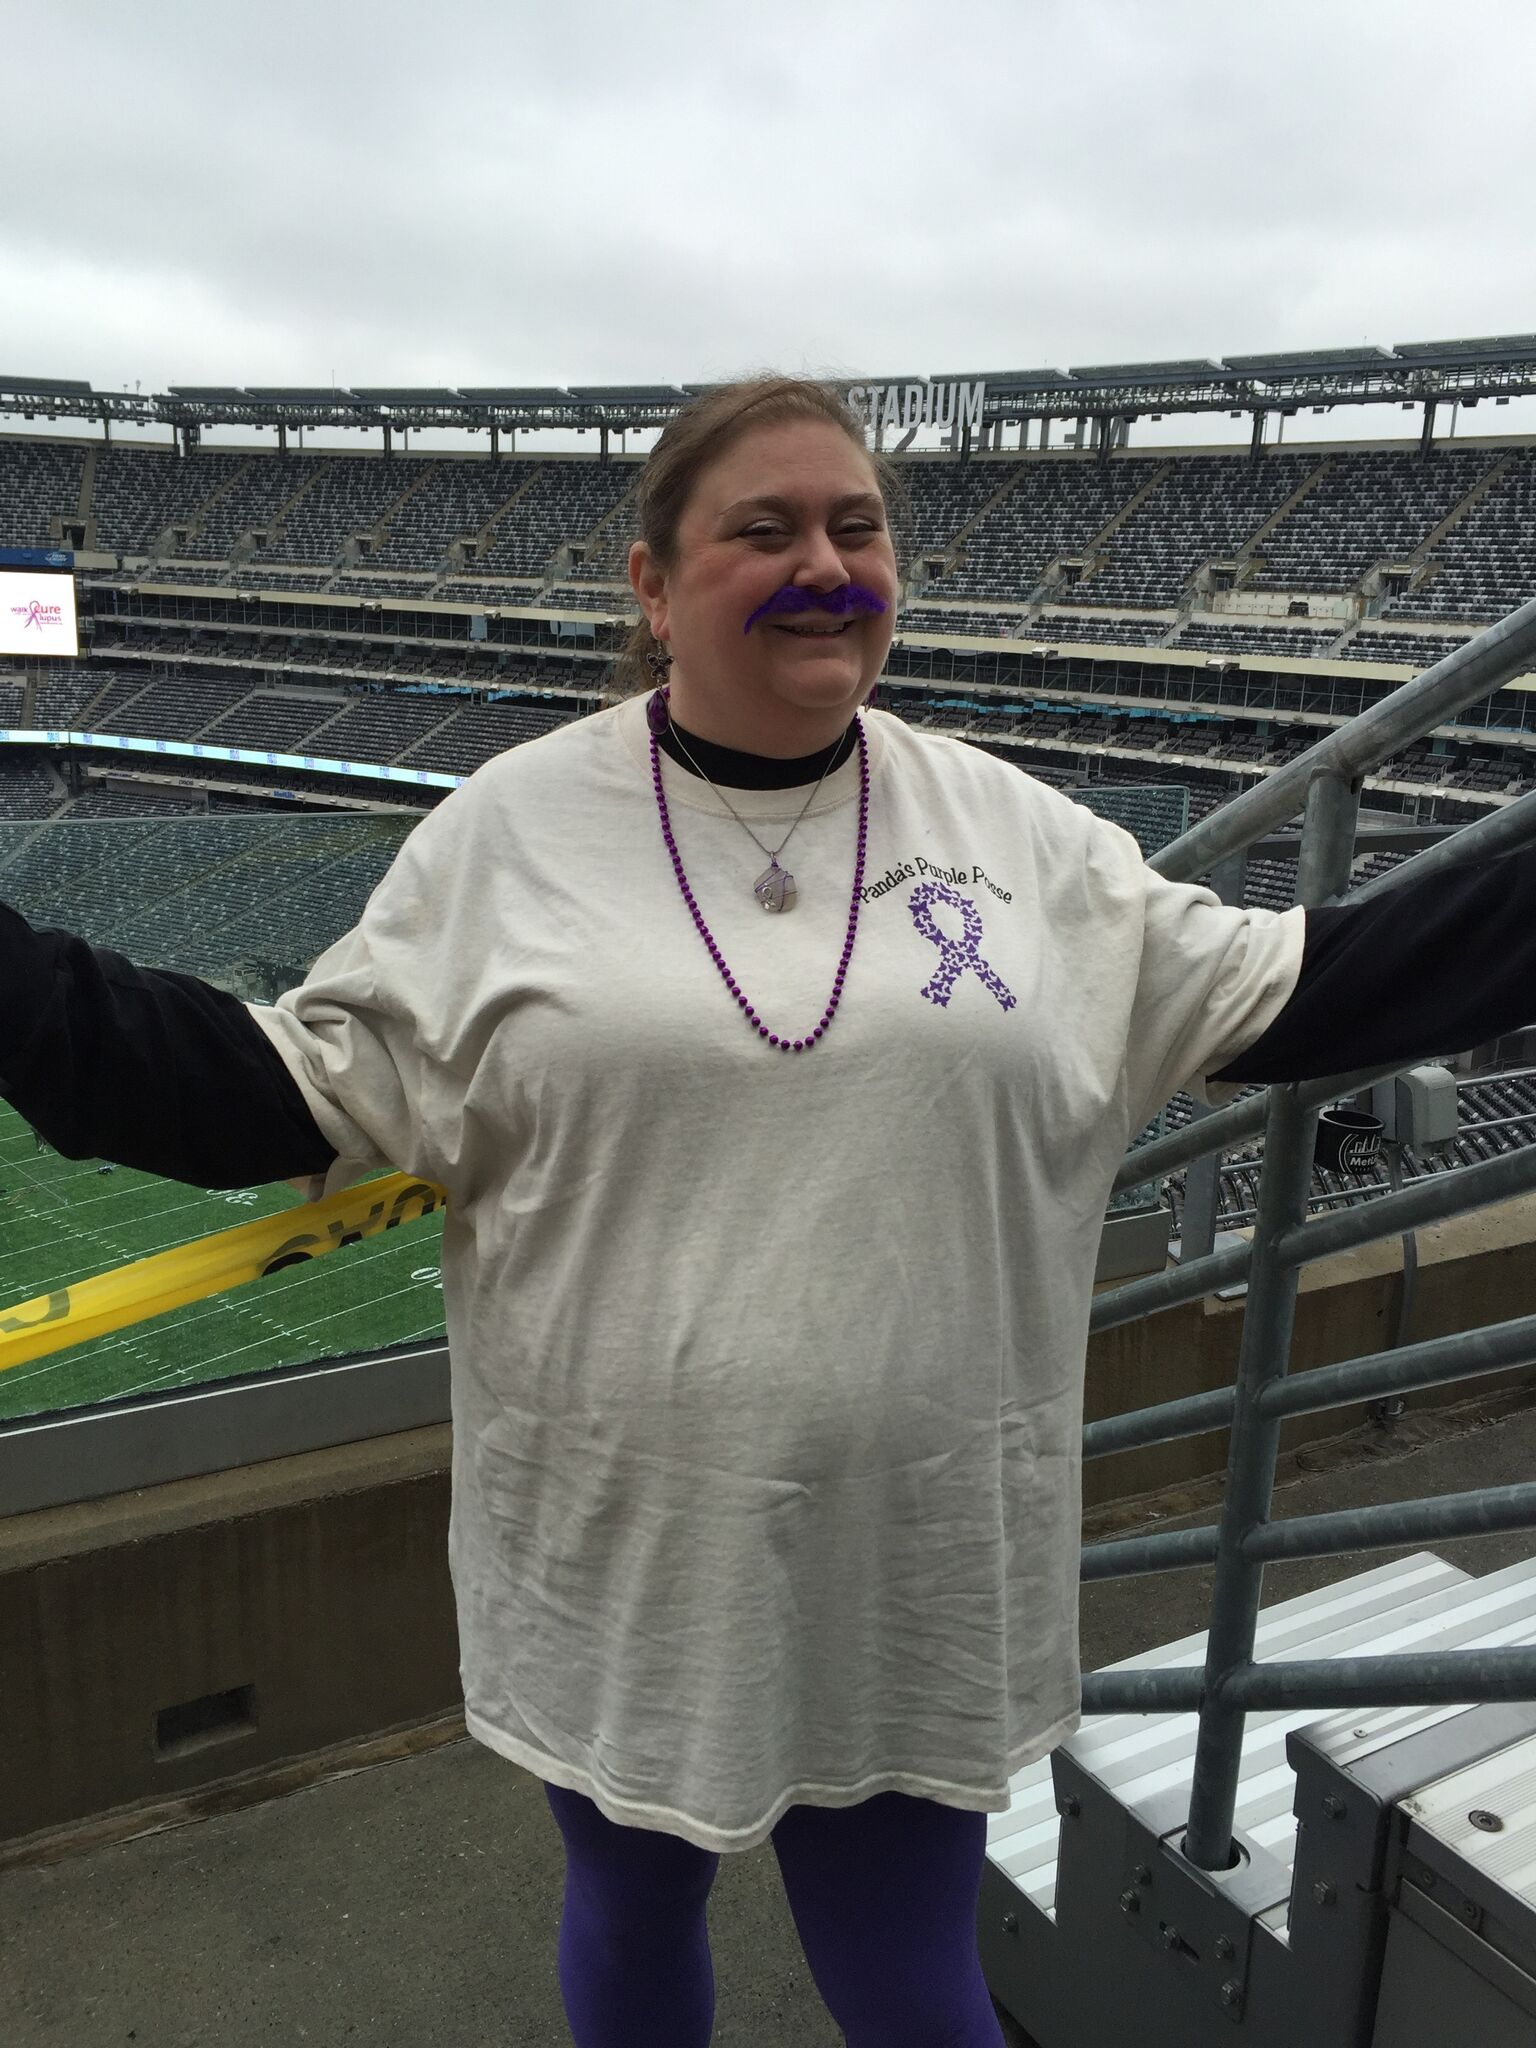 woman wearing a lupus awareness tshirt and standing in a baseball stadium